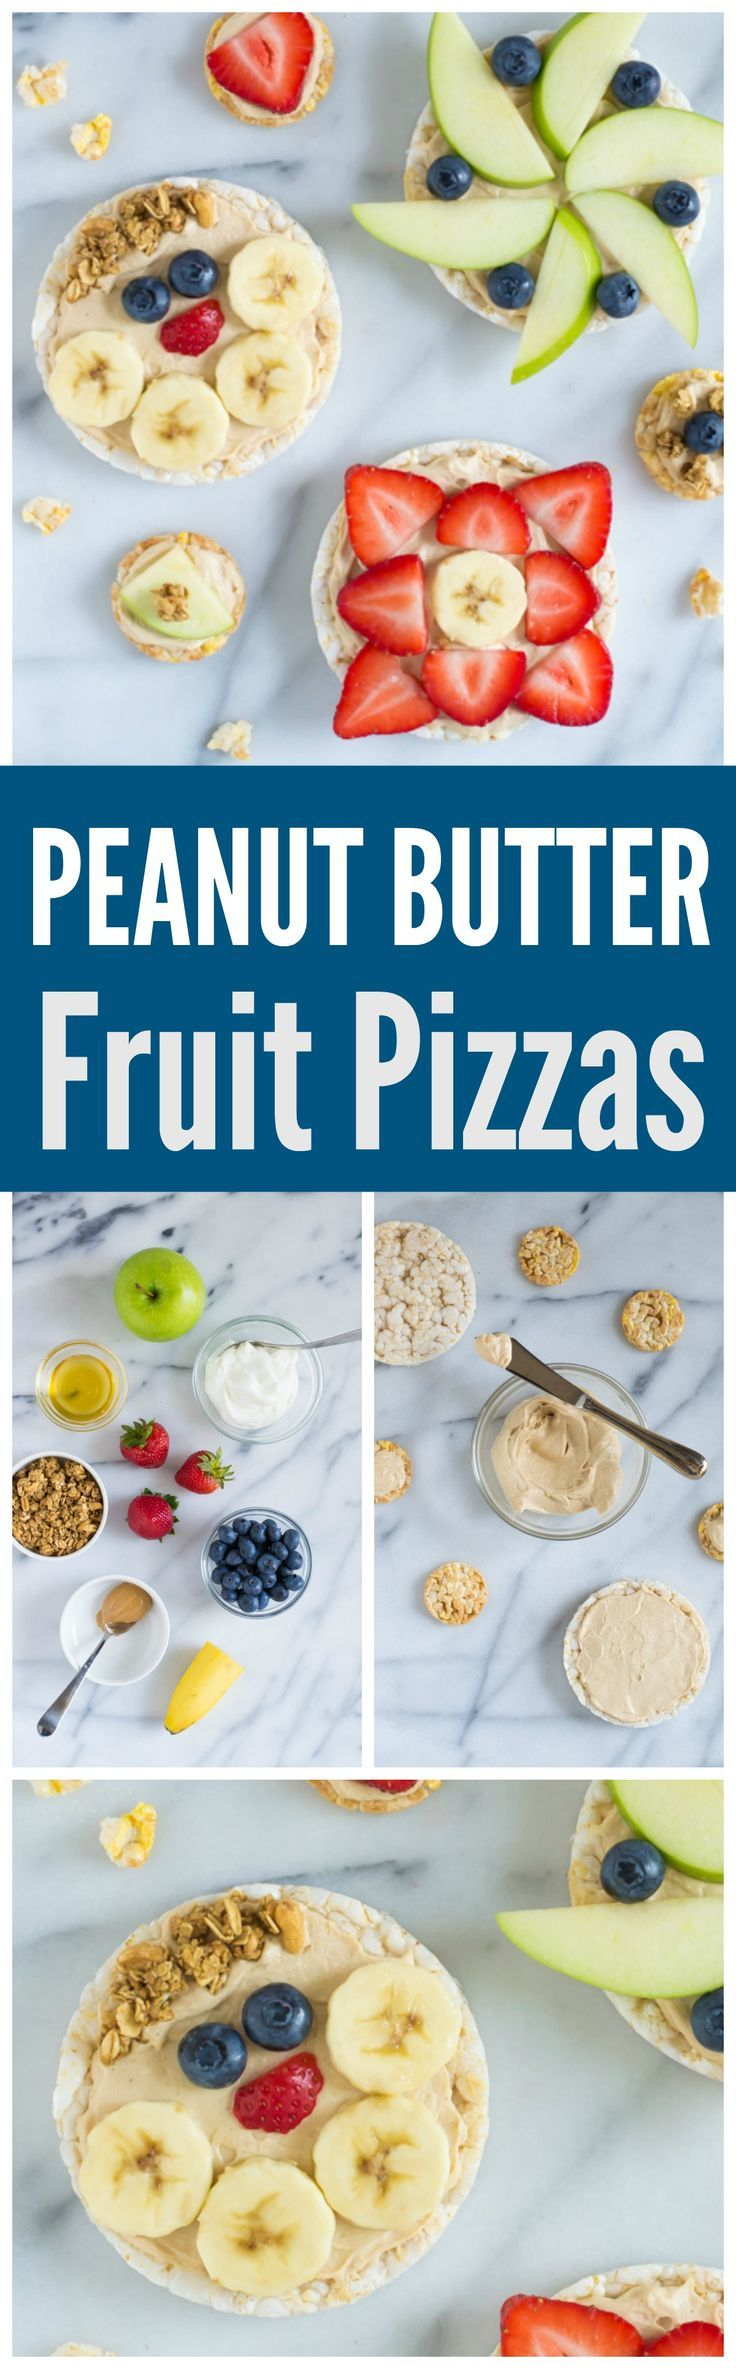 "Peanut Butter Healthy Fruit Pizzas. Kids LOVE these! Rice cakes spread with a creamy peanut butter yogurt ""sauce,"" topped with fresh fruit. A perfect healthy snack for kids. Great for lunchboxes and healthy after school snacks too! Recipe at wellplated.com @Well Plated #backtoschool #healthysnacks"